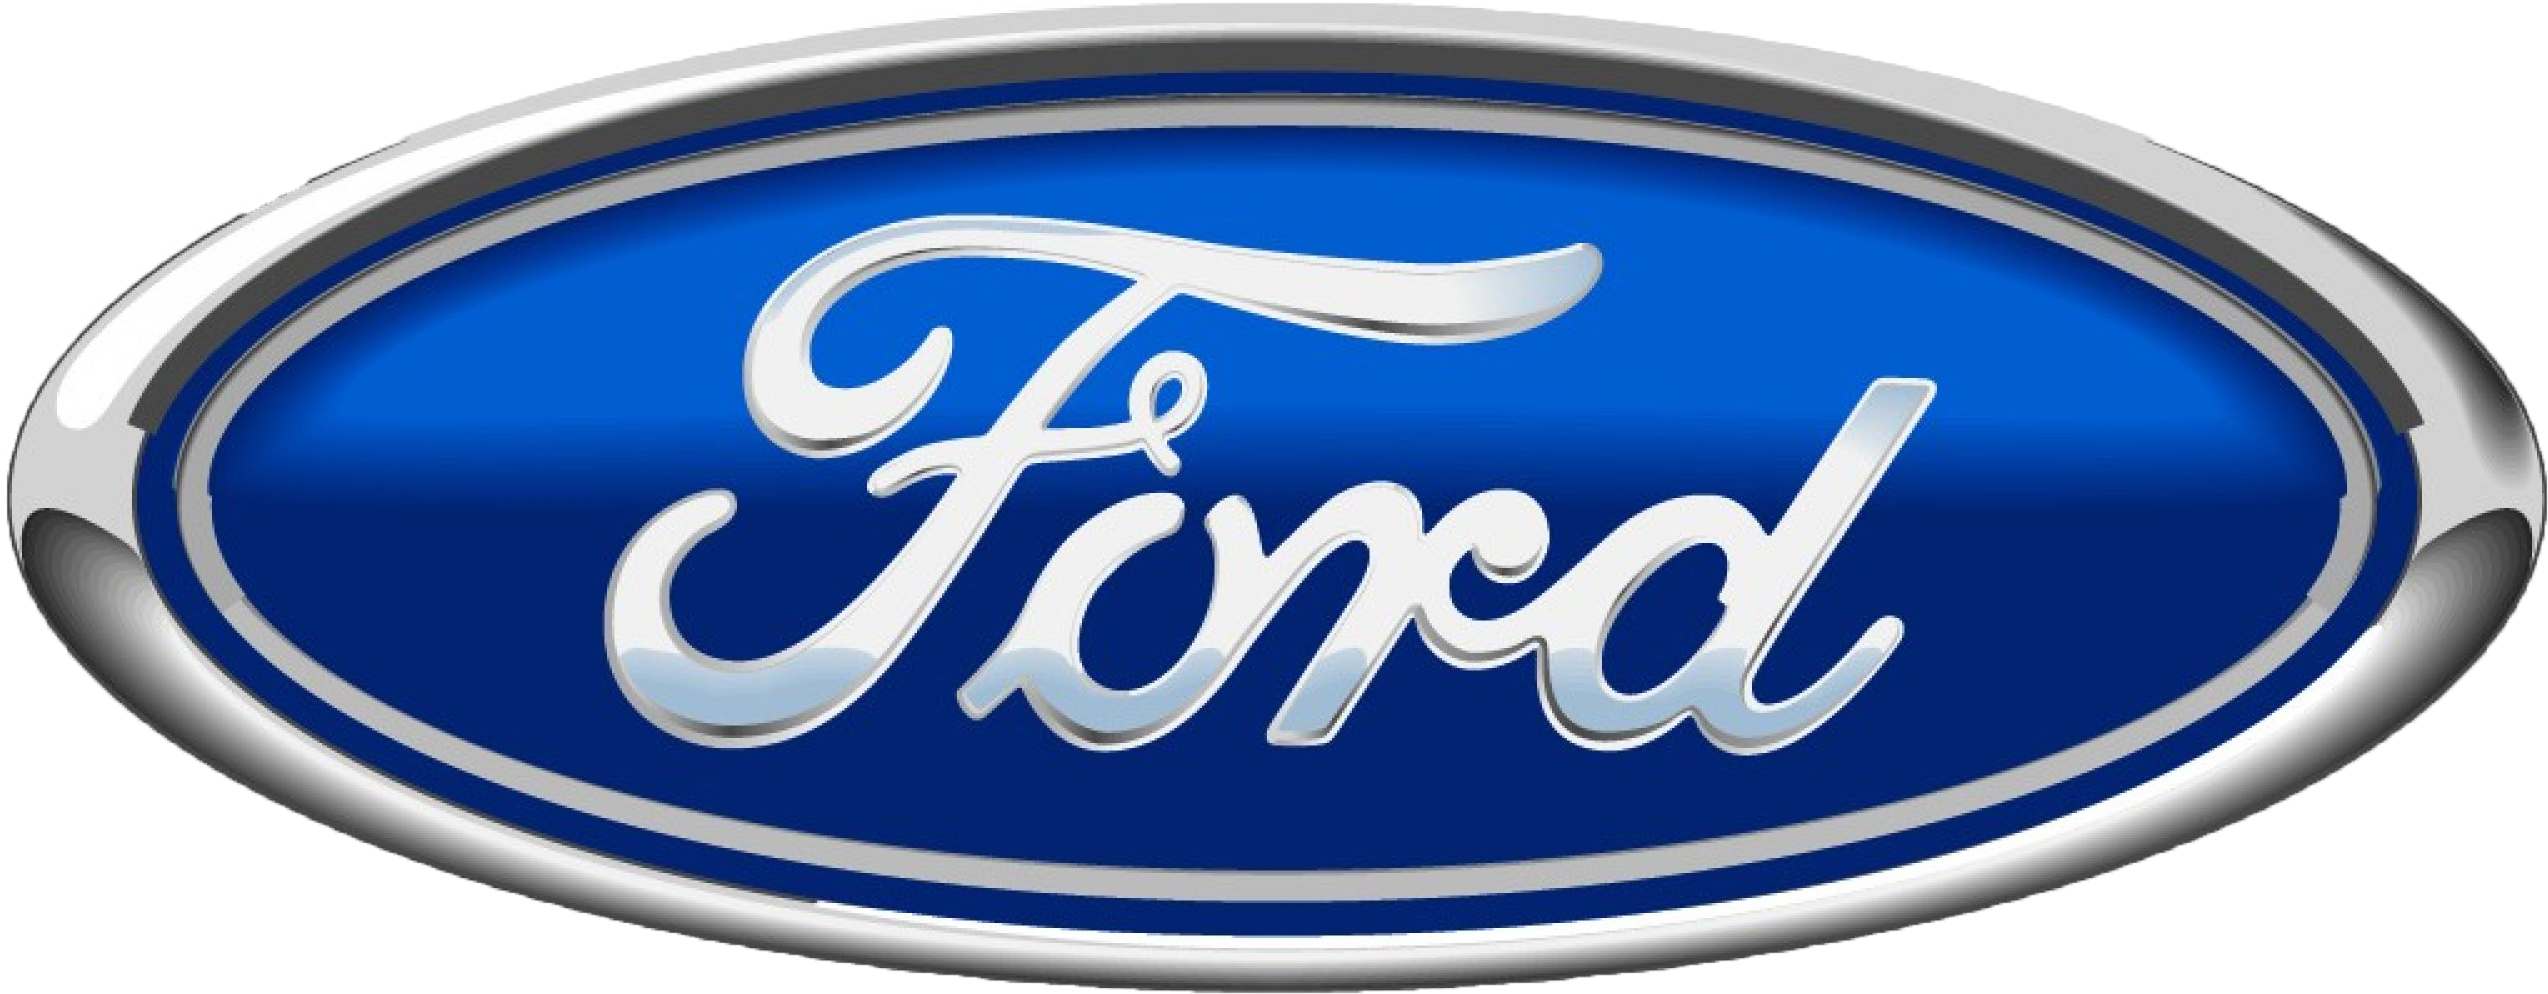 Ford logo letters png. Design woody s visual